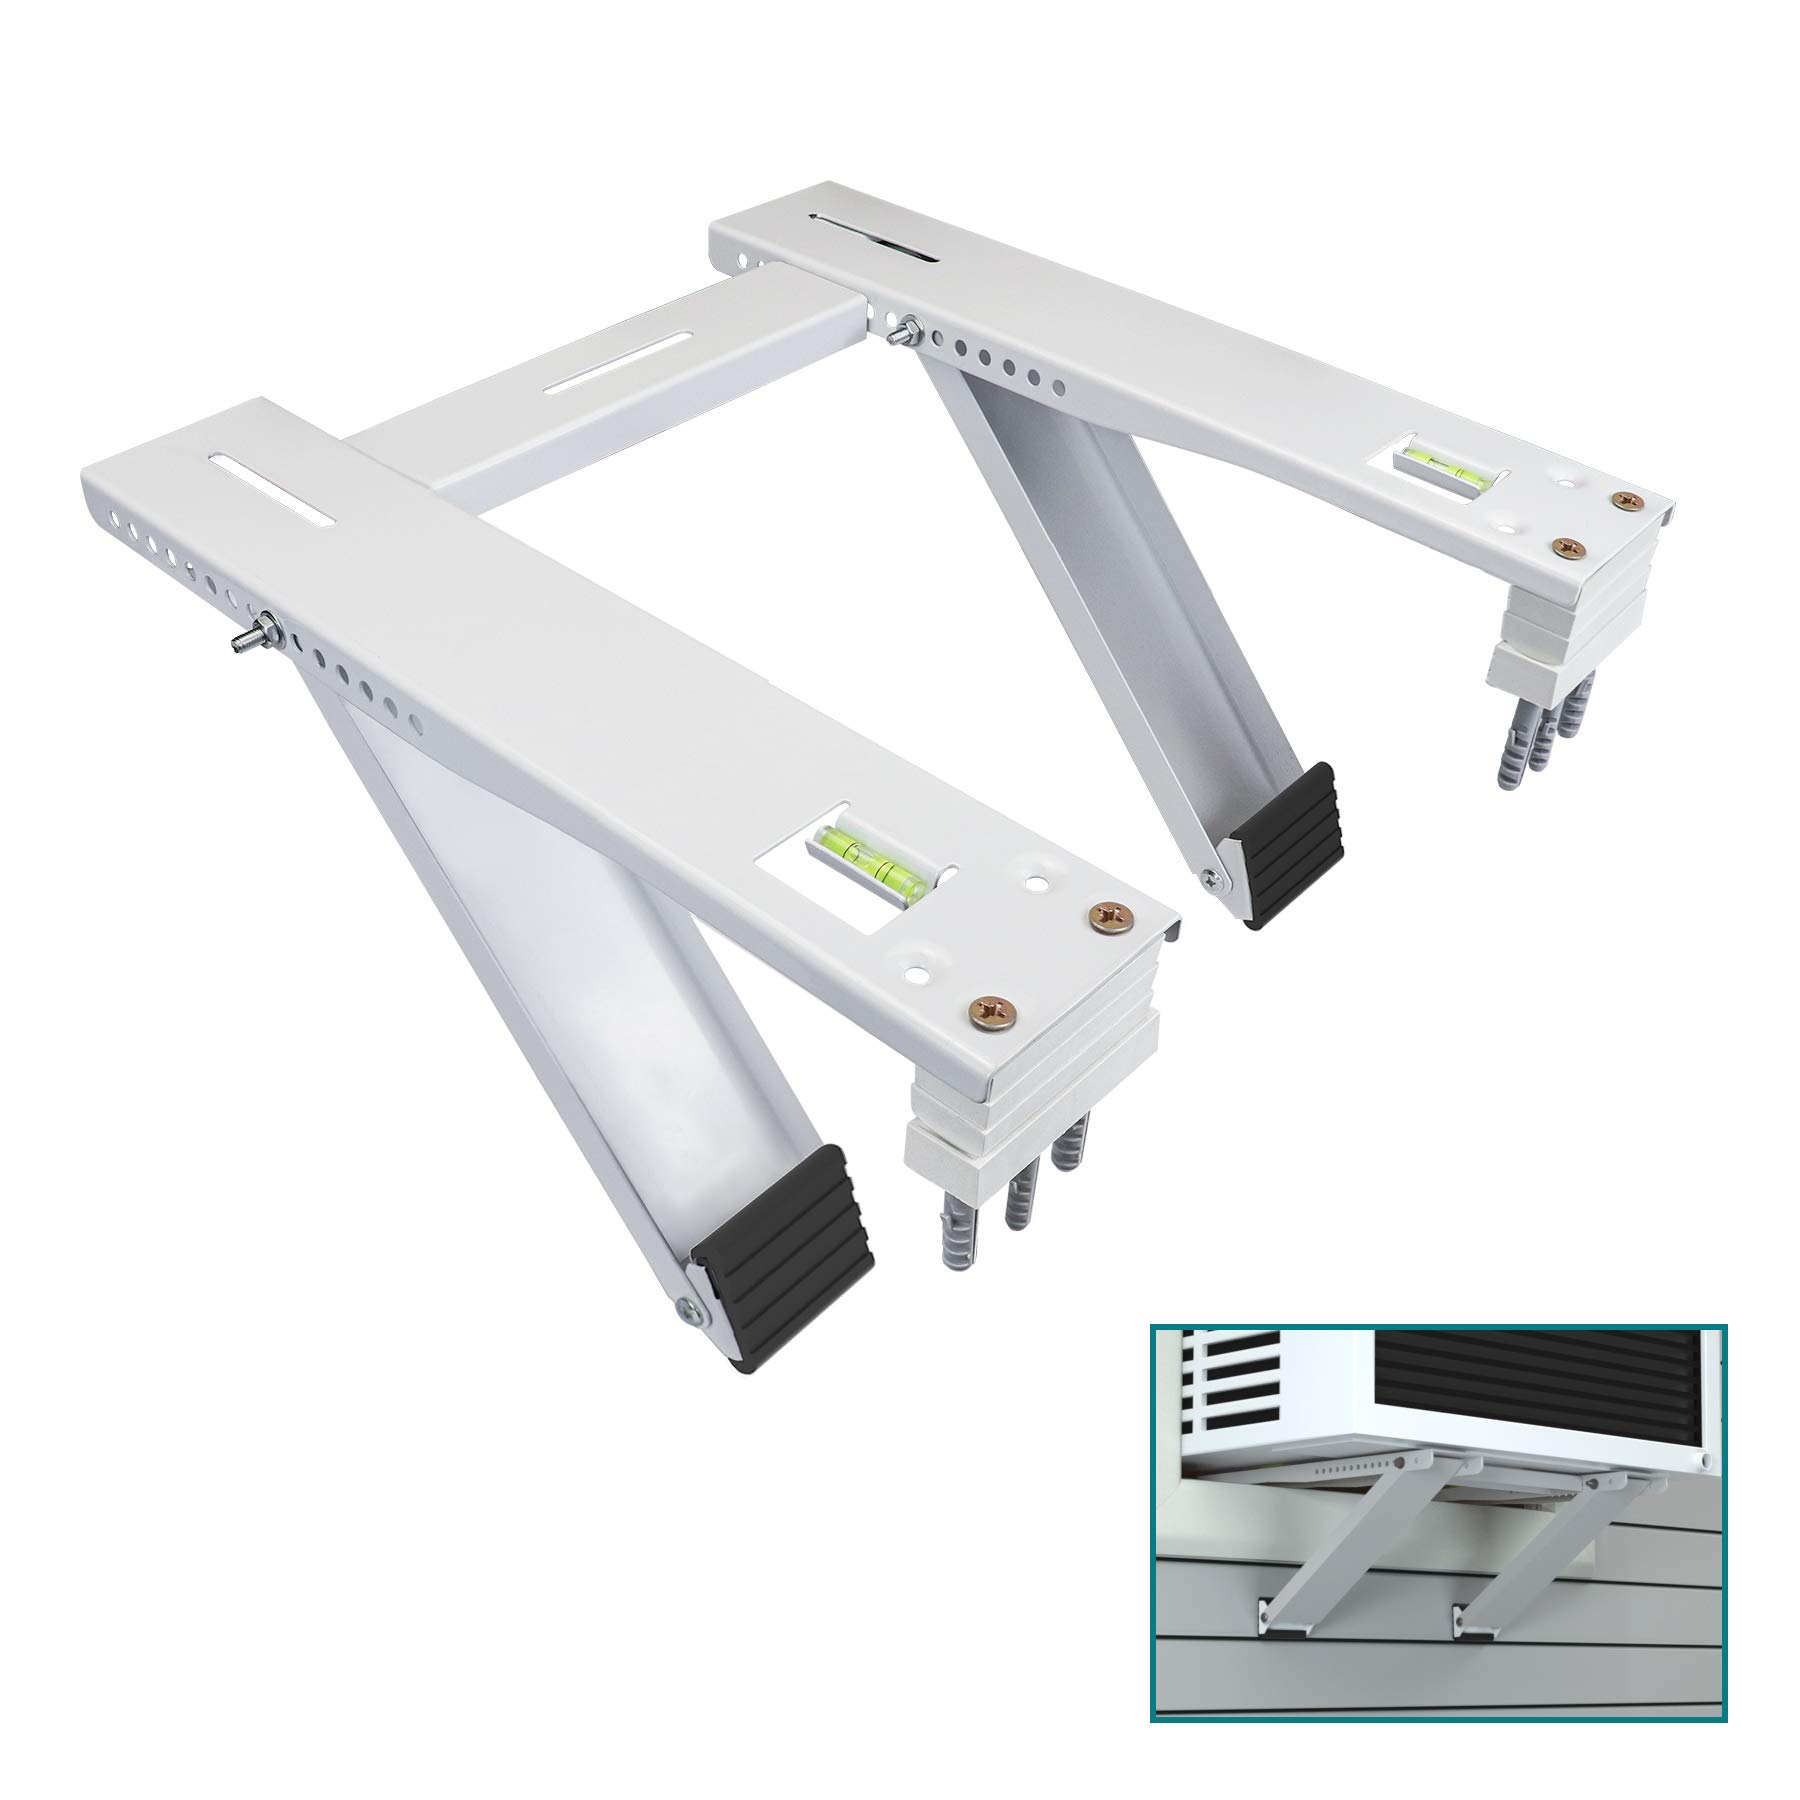 Daisypower Window Air Conditioner Bracket Supports Up to 200lbs, Fits 5000 to 22000 BTU AC Units, Heavy Duty 2 Arms Structure